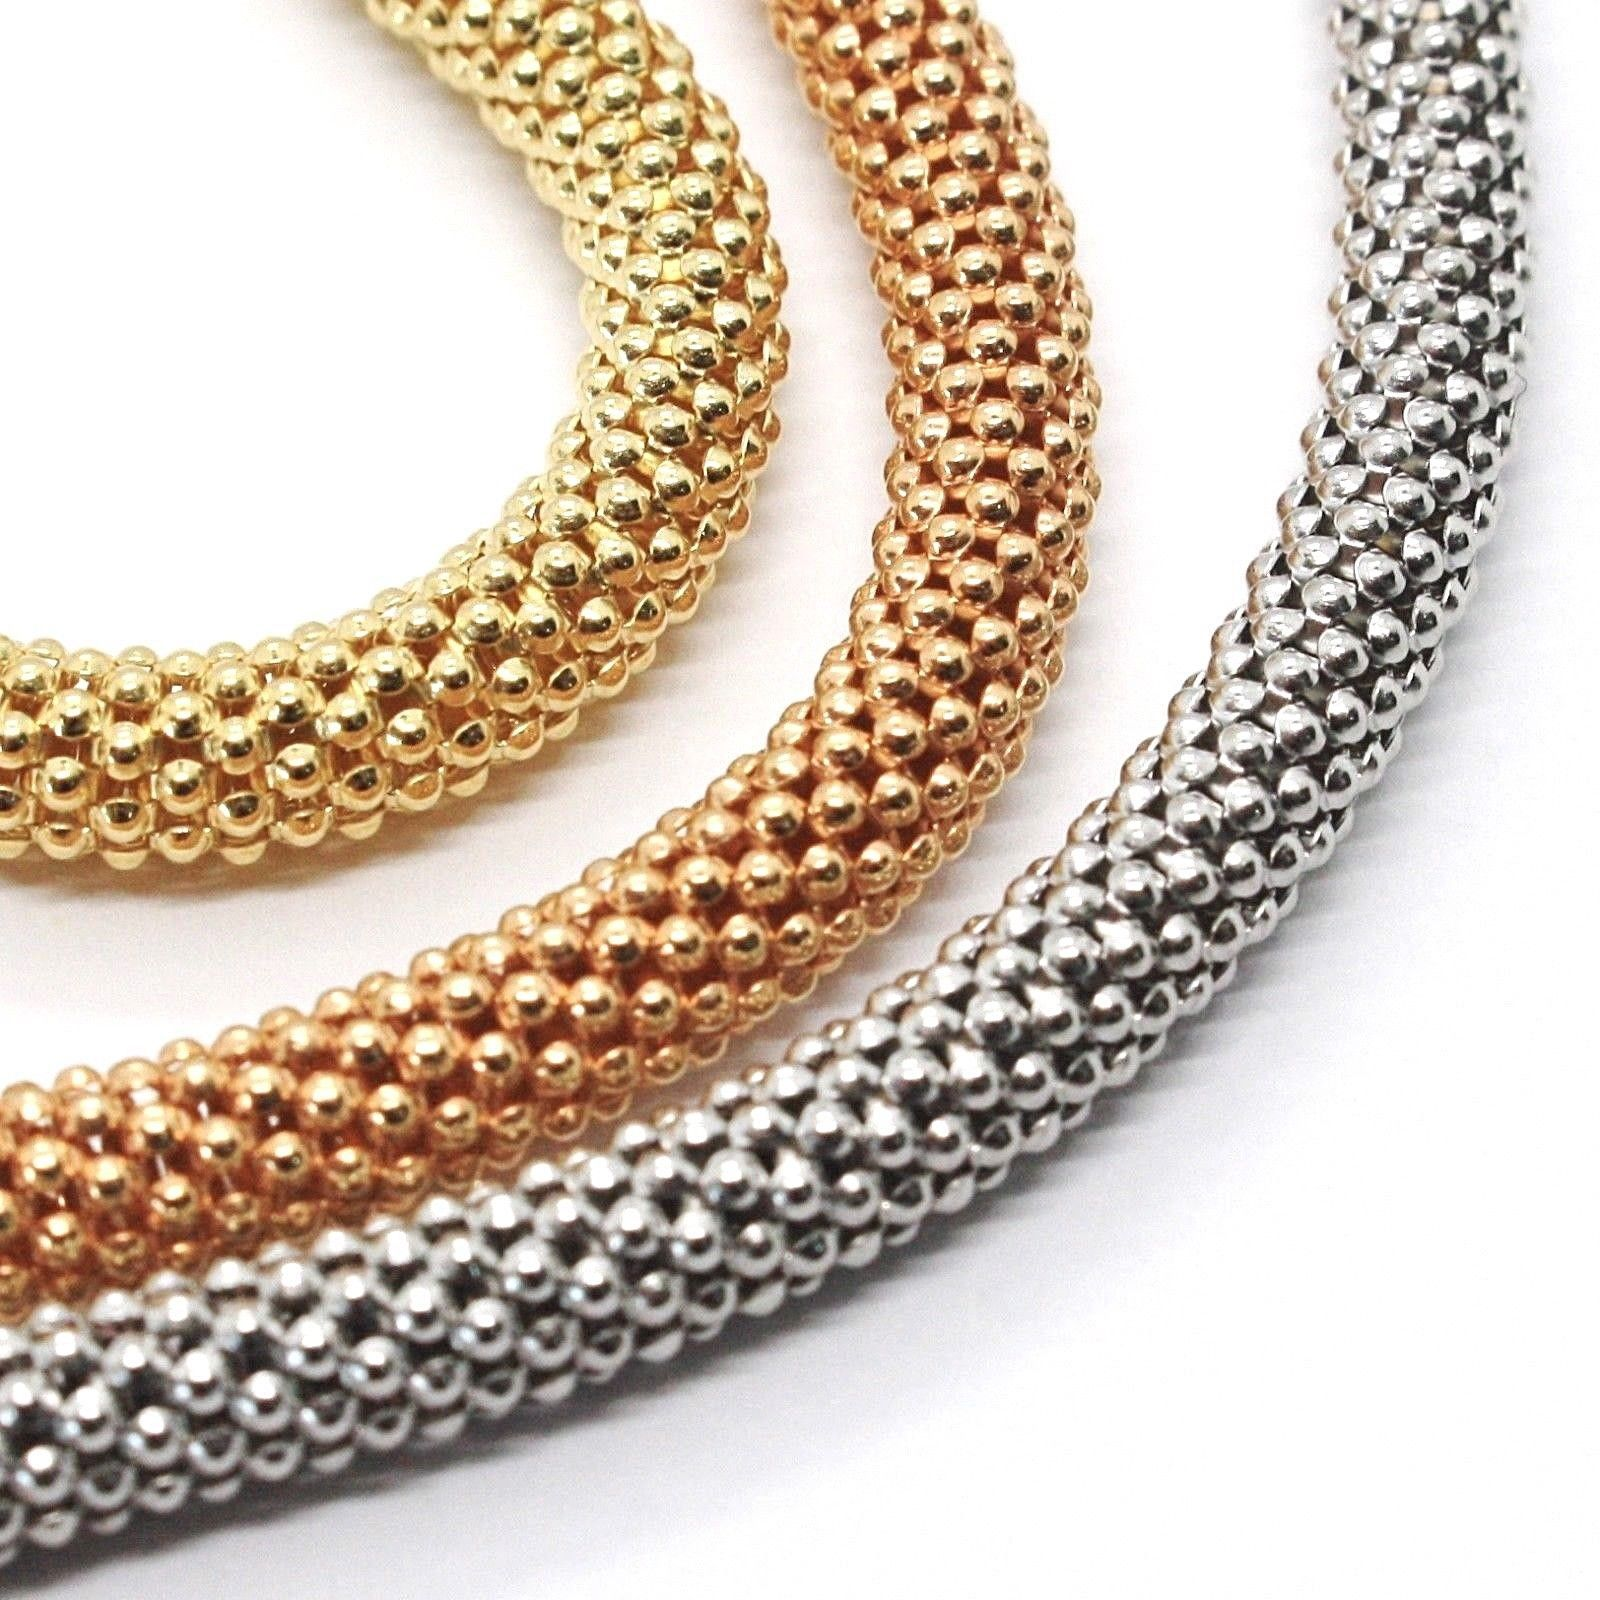 3 18K ROSE YELLOW WHITE GOLD BRACELETS 7.3 INCHES, BASKET WEAVE, 5 MM THICKNESS